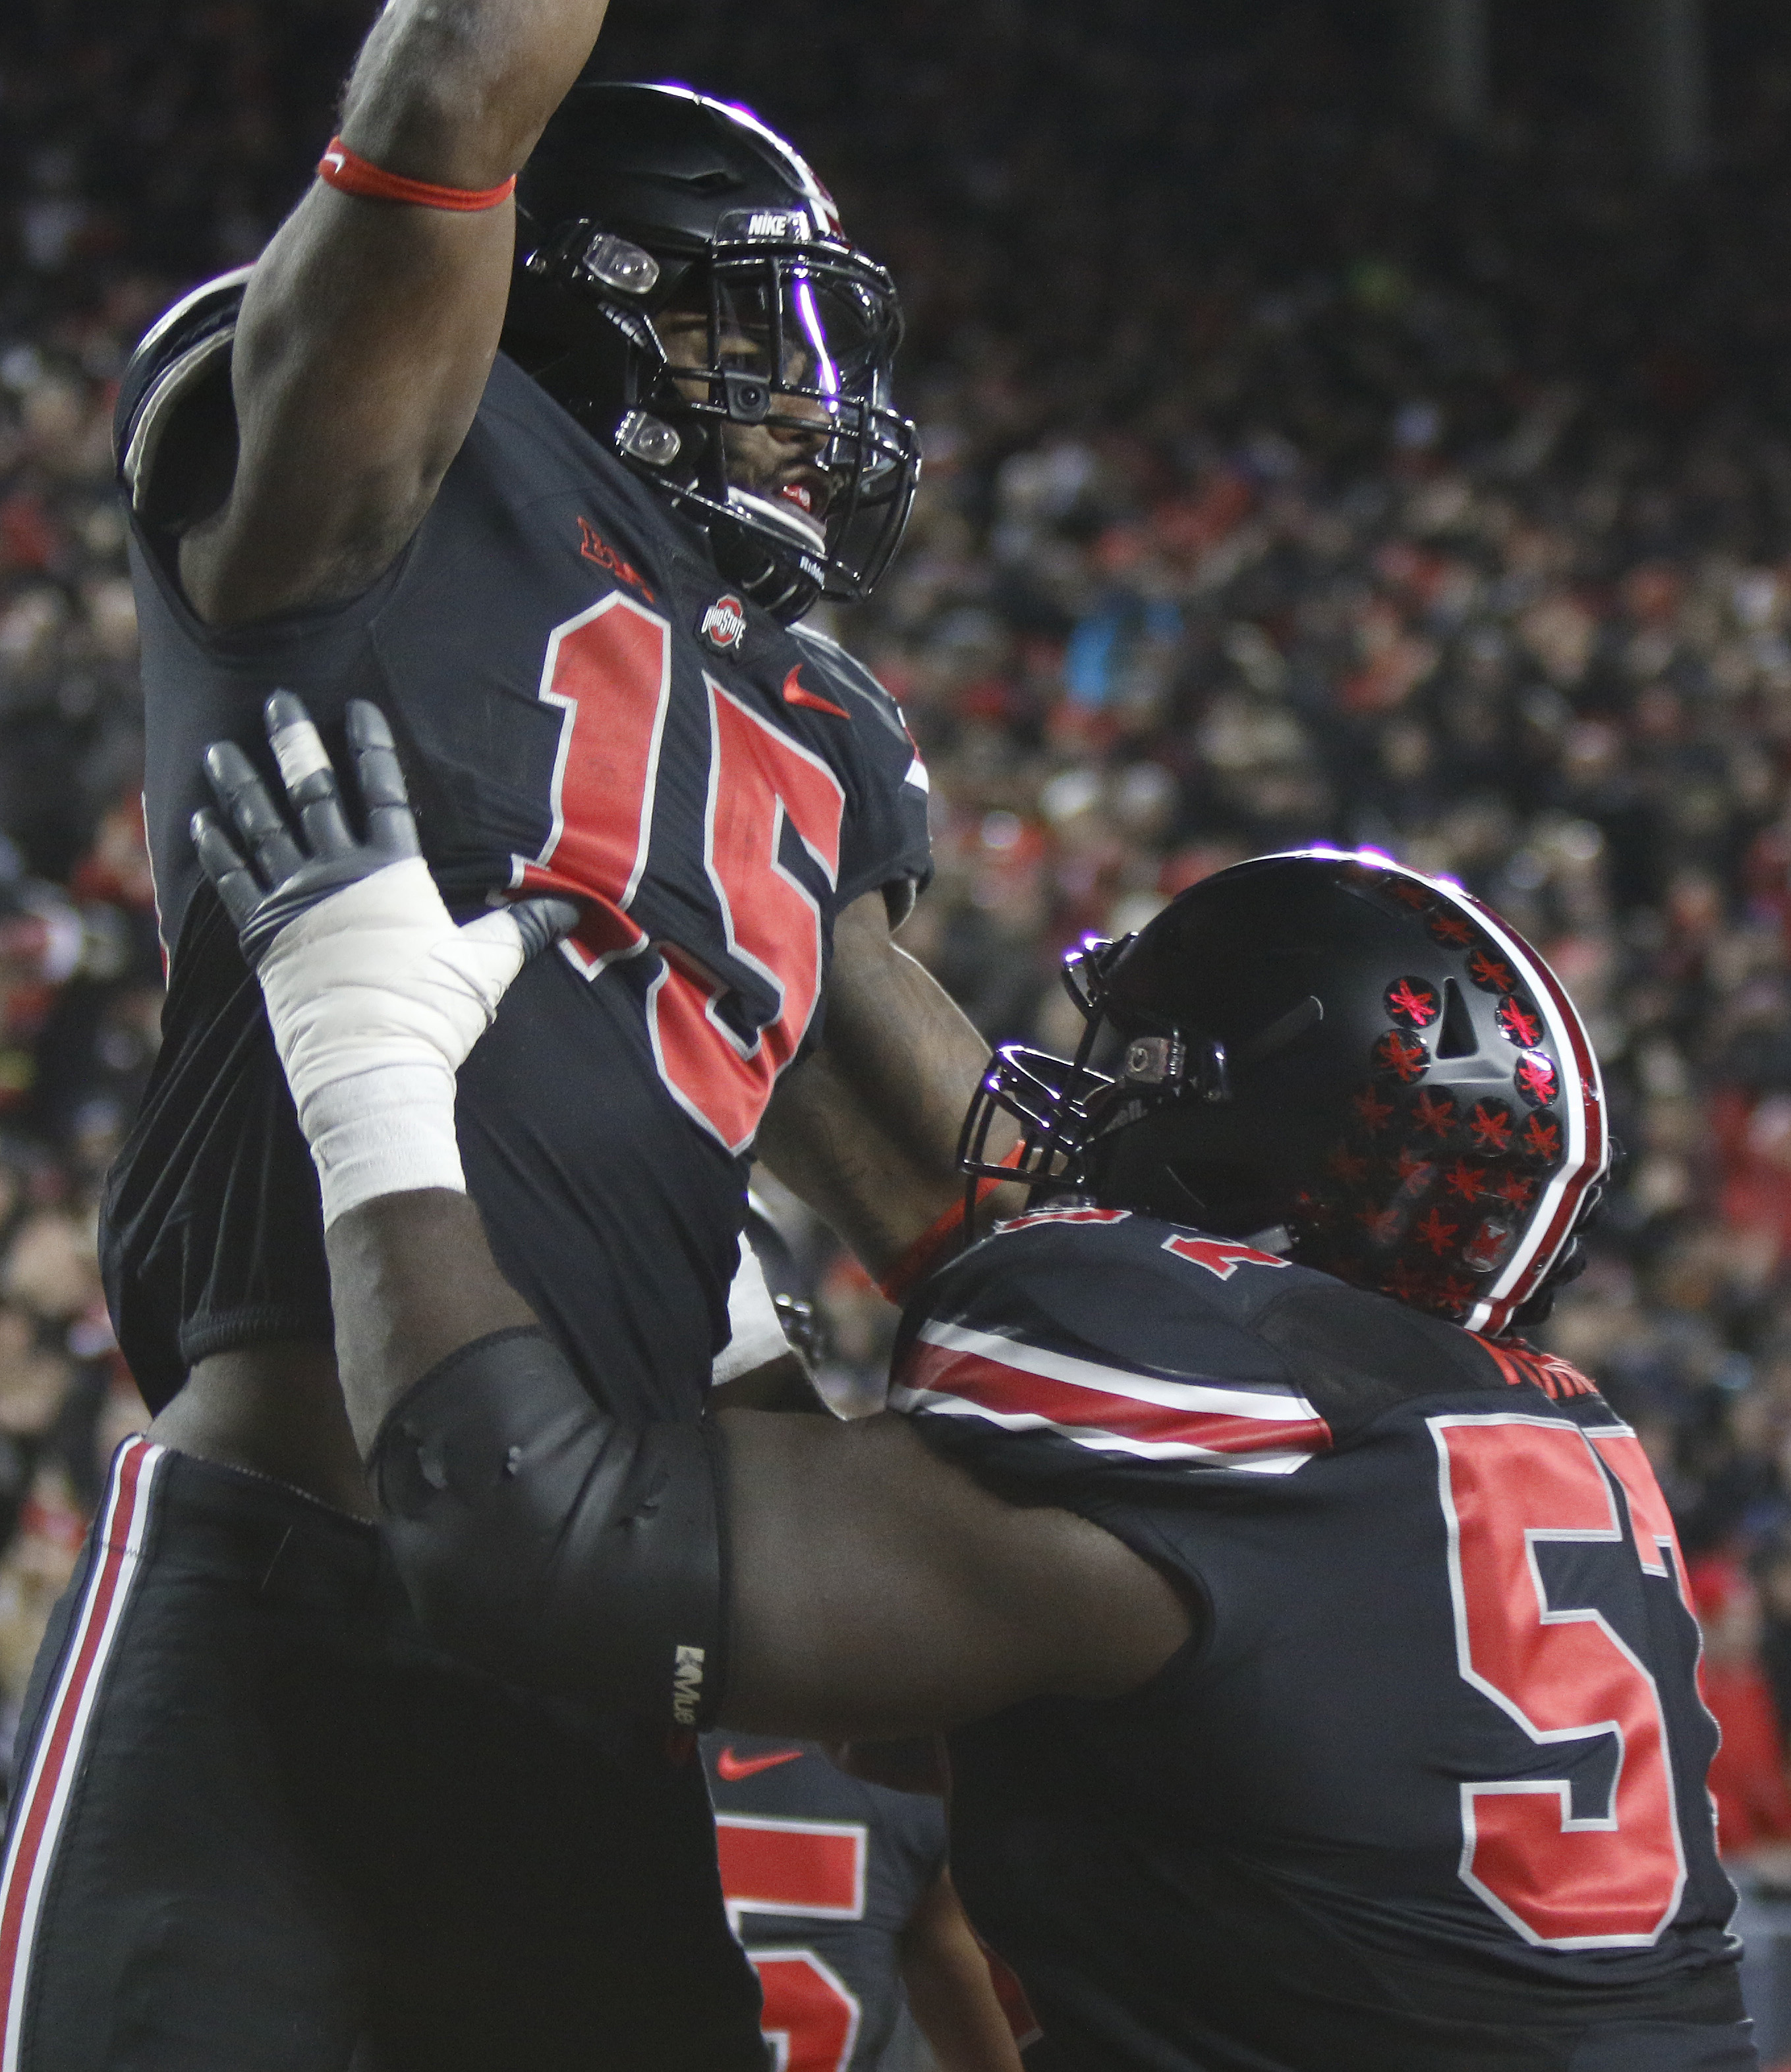 Ohio State running back Ezekiel Elliott, left, celebrates his touchdown against Penn State with teammate offensive lineman Chase Farris during the first half of an NCAA college football game Saturday, Oct. 17, 2015, in Columbus, Ohio. (AP Photo/Paul Verno